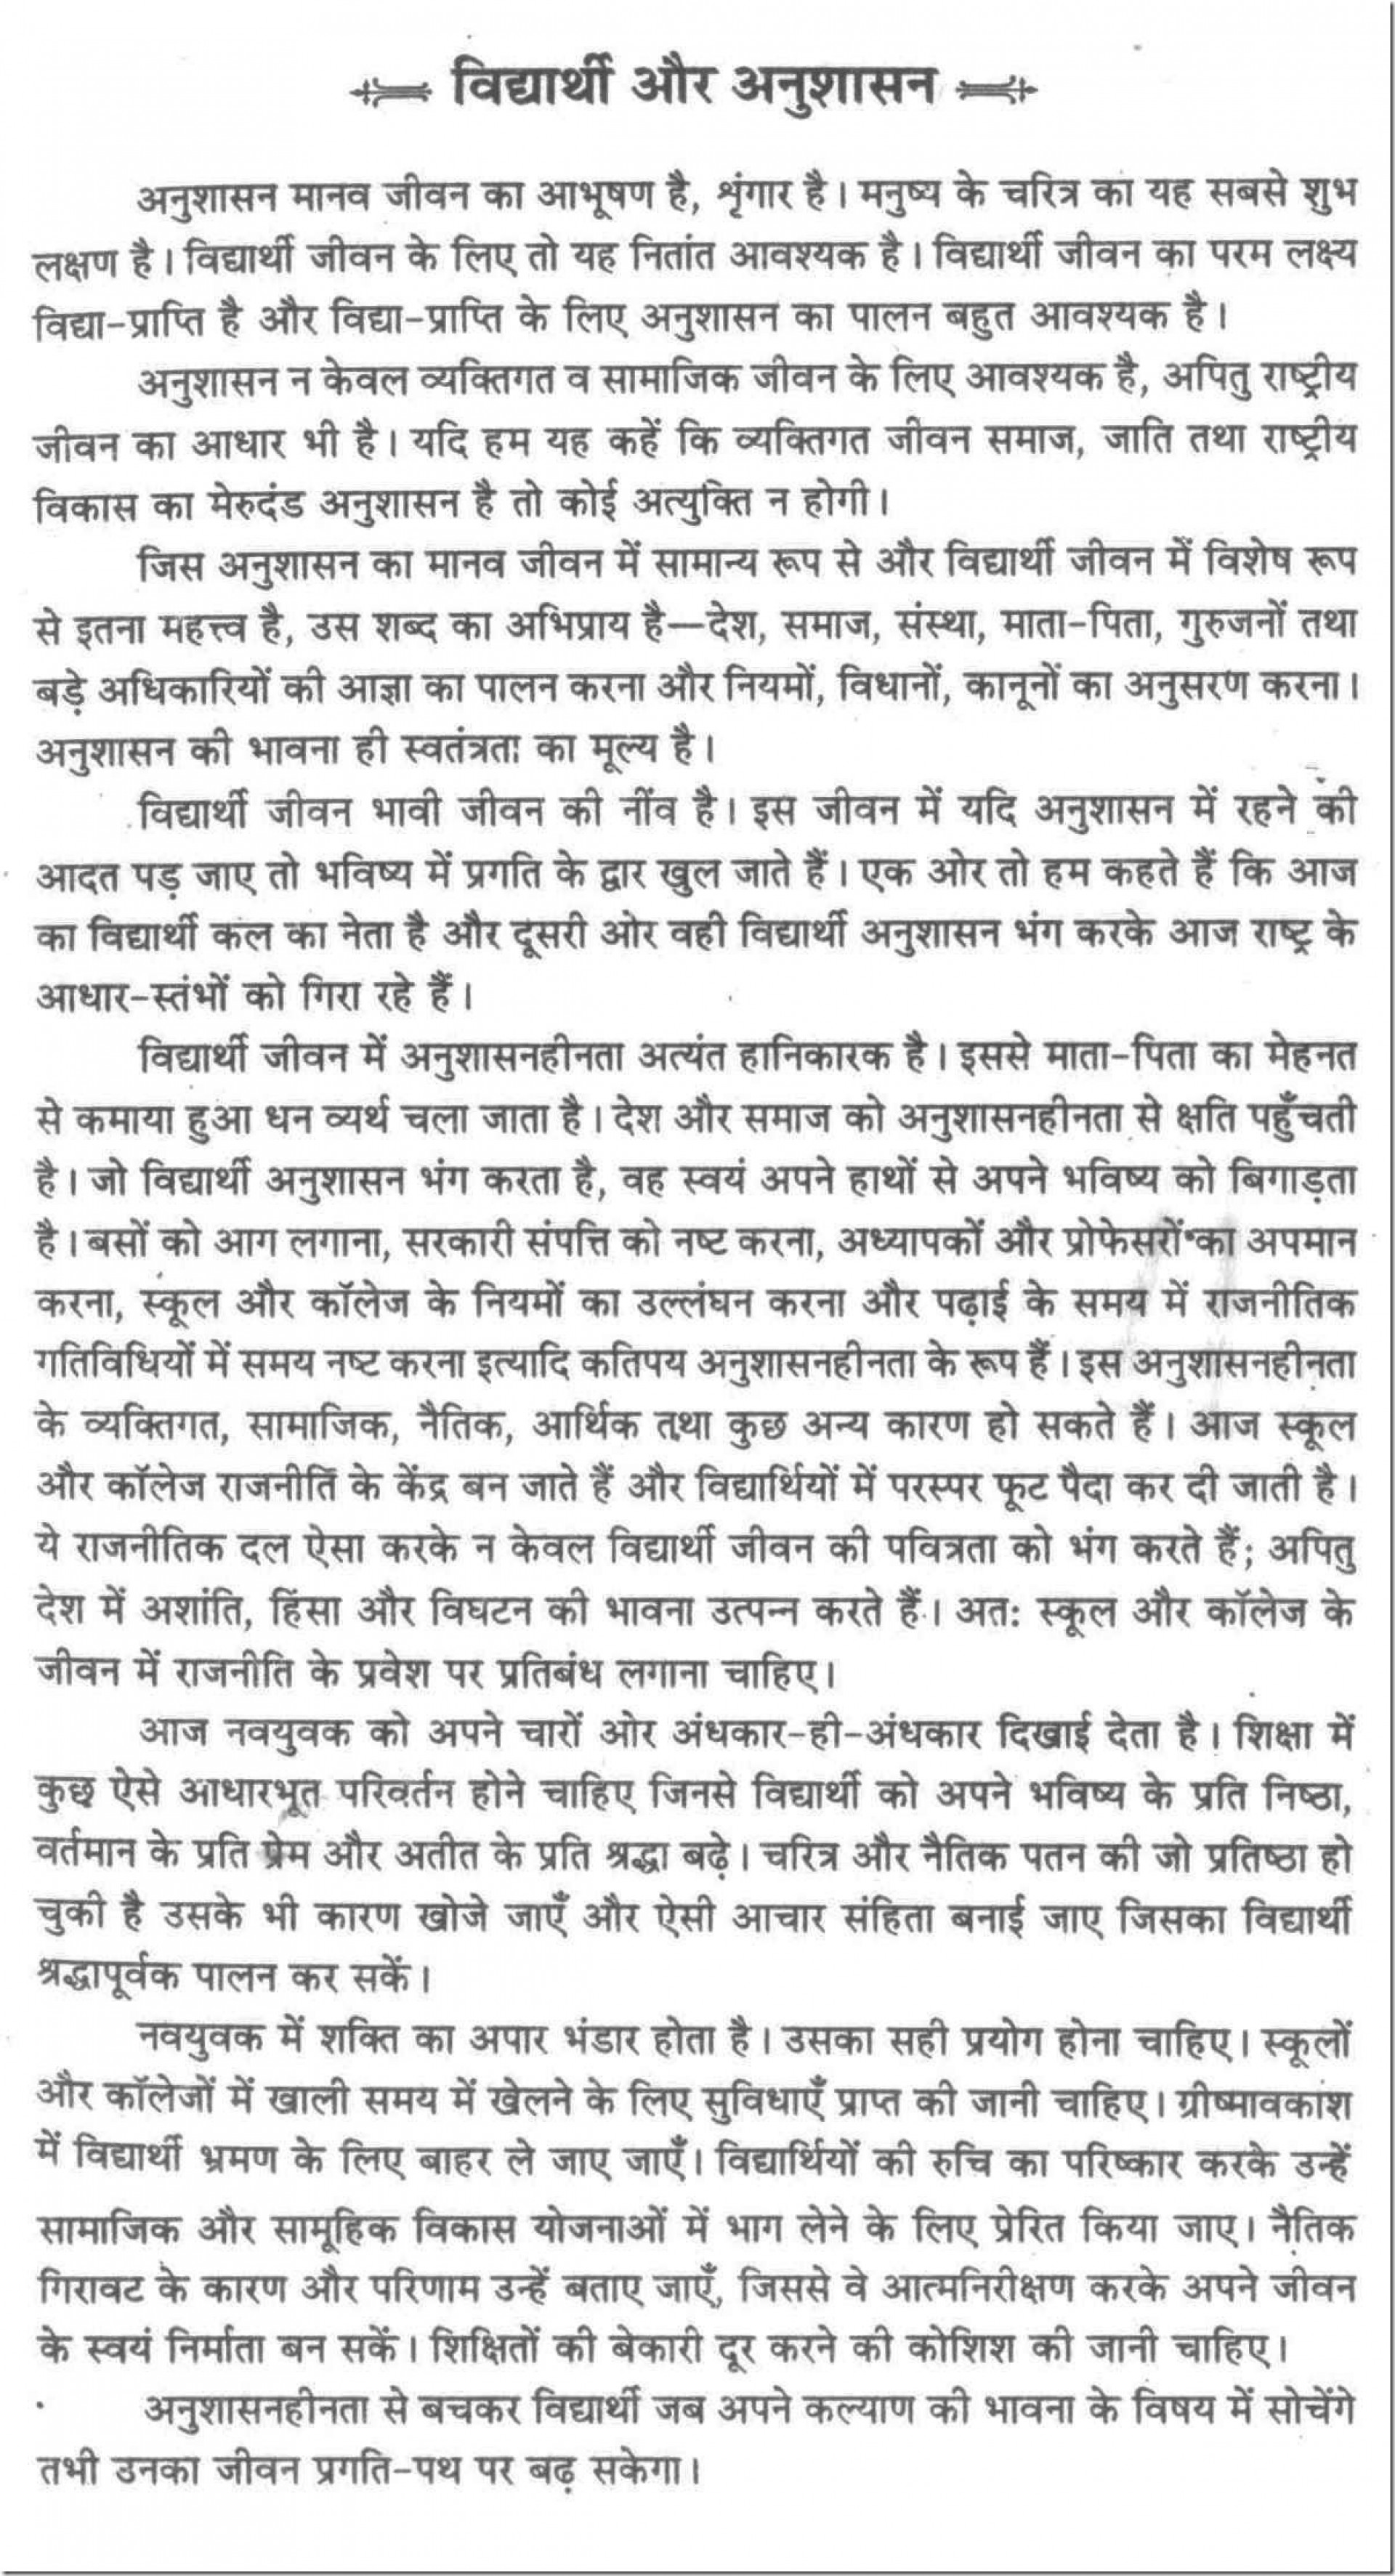 012 Essay Example On Punctuality And Discipline Write Short For School Students In At Home Hindi Easy Class Urdu Life English Our Stunning 1920